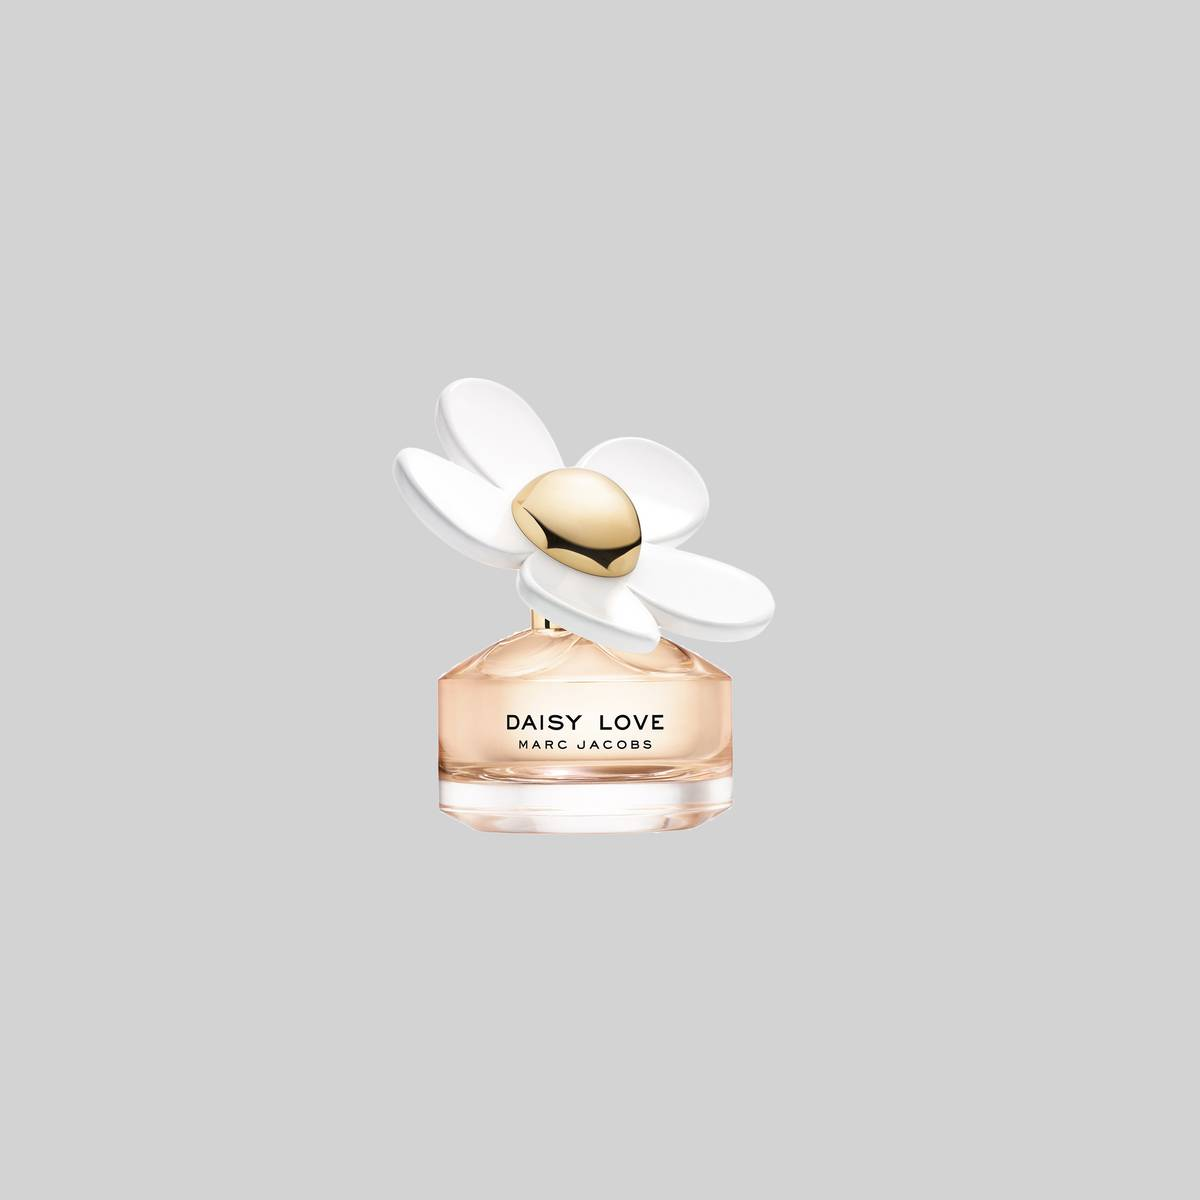 Addictive and irresistible, Daisy Love is a new facet of the Marc Jacobs iconic Daisy fragrance. A care-free contagious love of life celebrated in radiant florals and unexpected sparkling gourmand twists. | MARC JACOBS Women\\'s Daisy Love 1.7 oz Fragrance